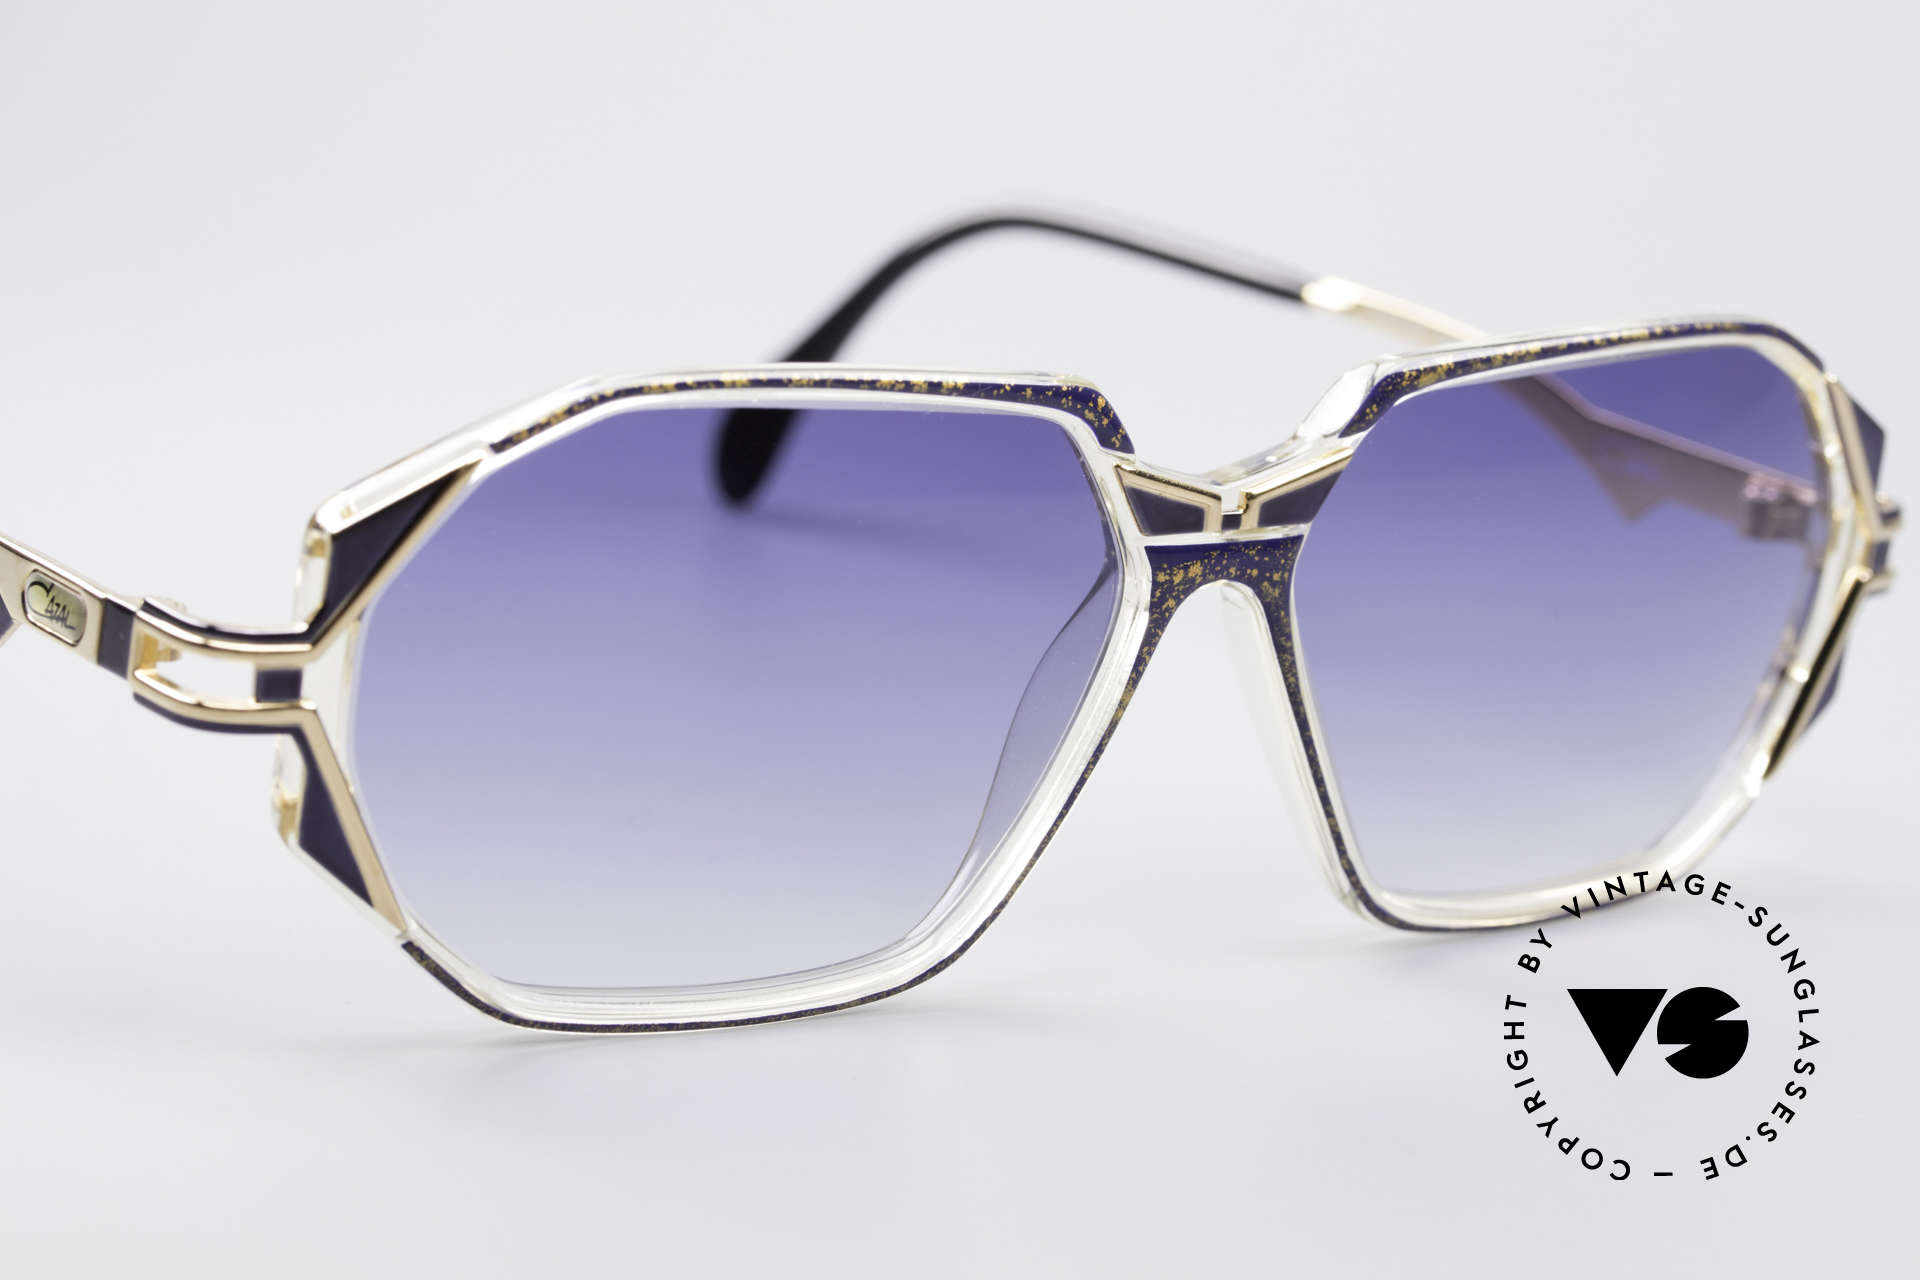 Cazal 361 Designer Sunglasses No Retro, never worn (like all our rare VINTAGE Cazal sunglasses), Made for Women